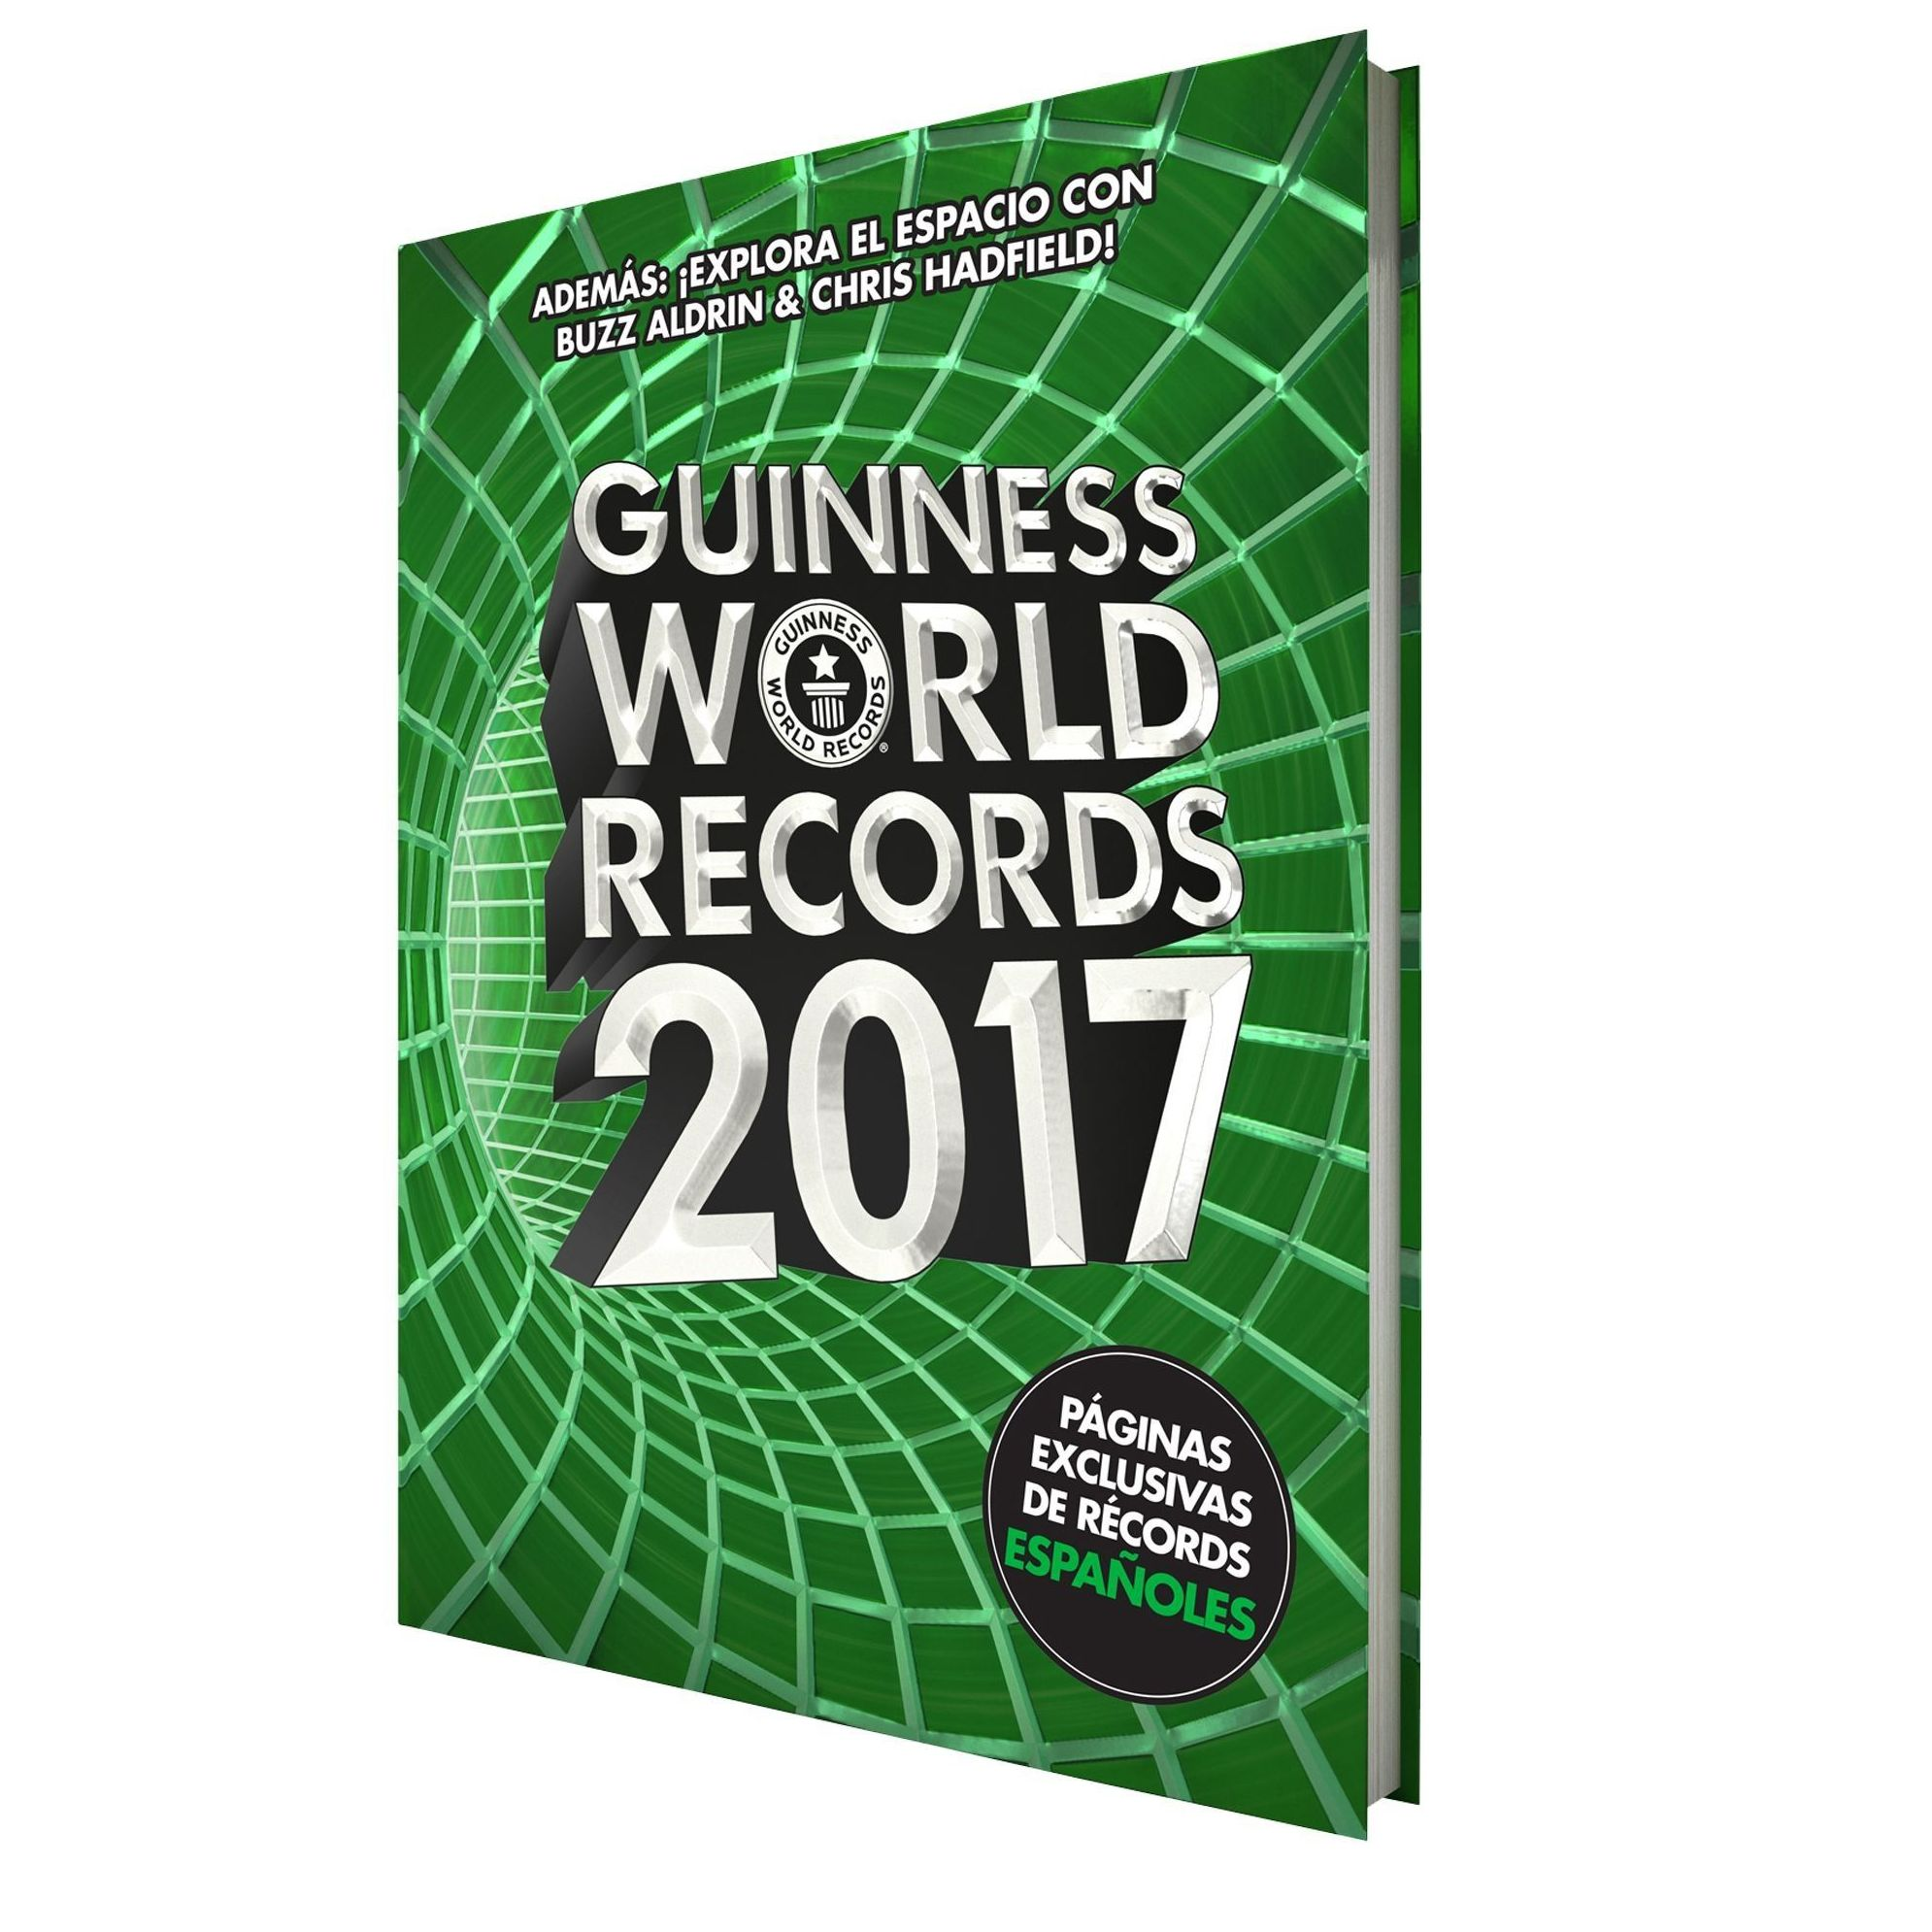 GUINNESS WORLD RECORDS 2017. PRECIO ESPECIAL